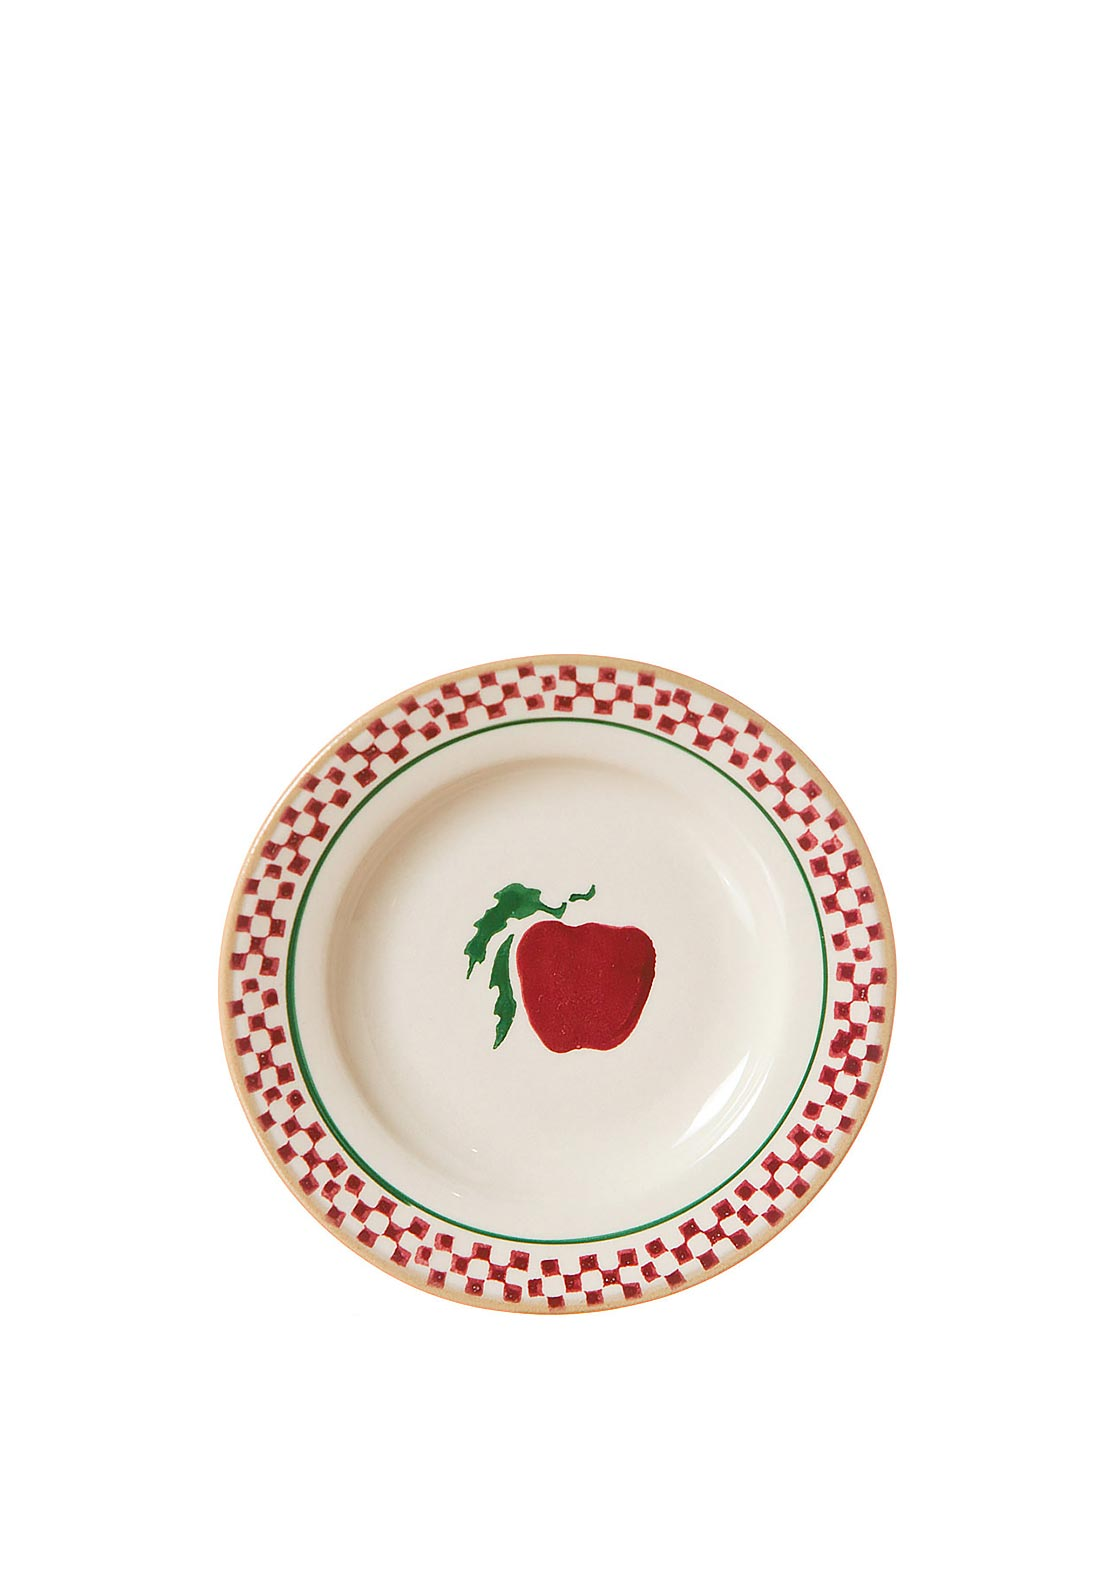 Nicholas Mosse Pottery Apple Tiny Plate